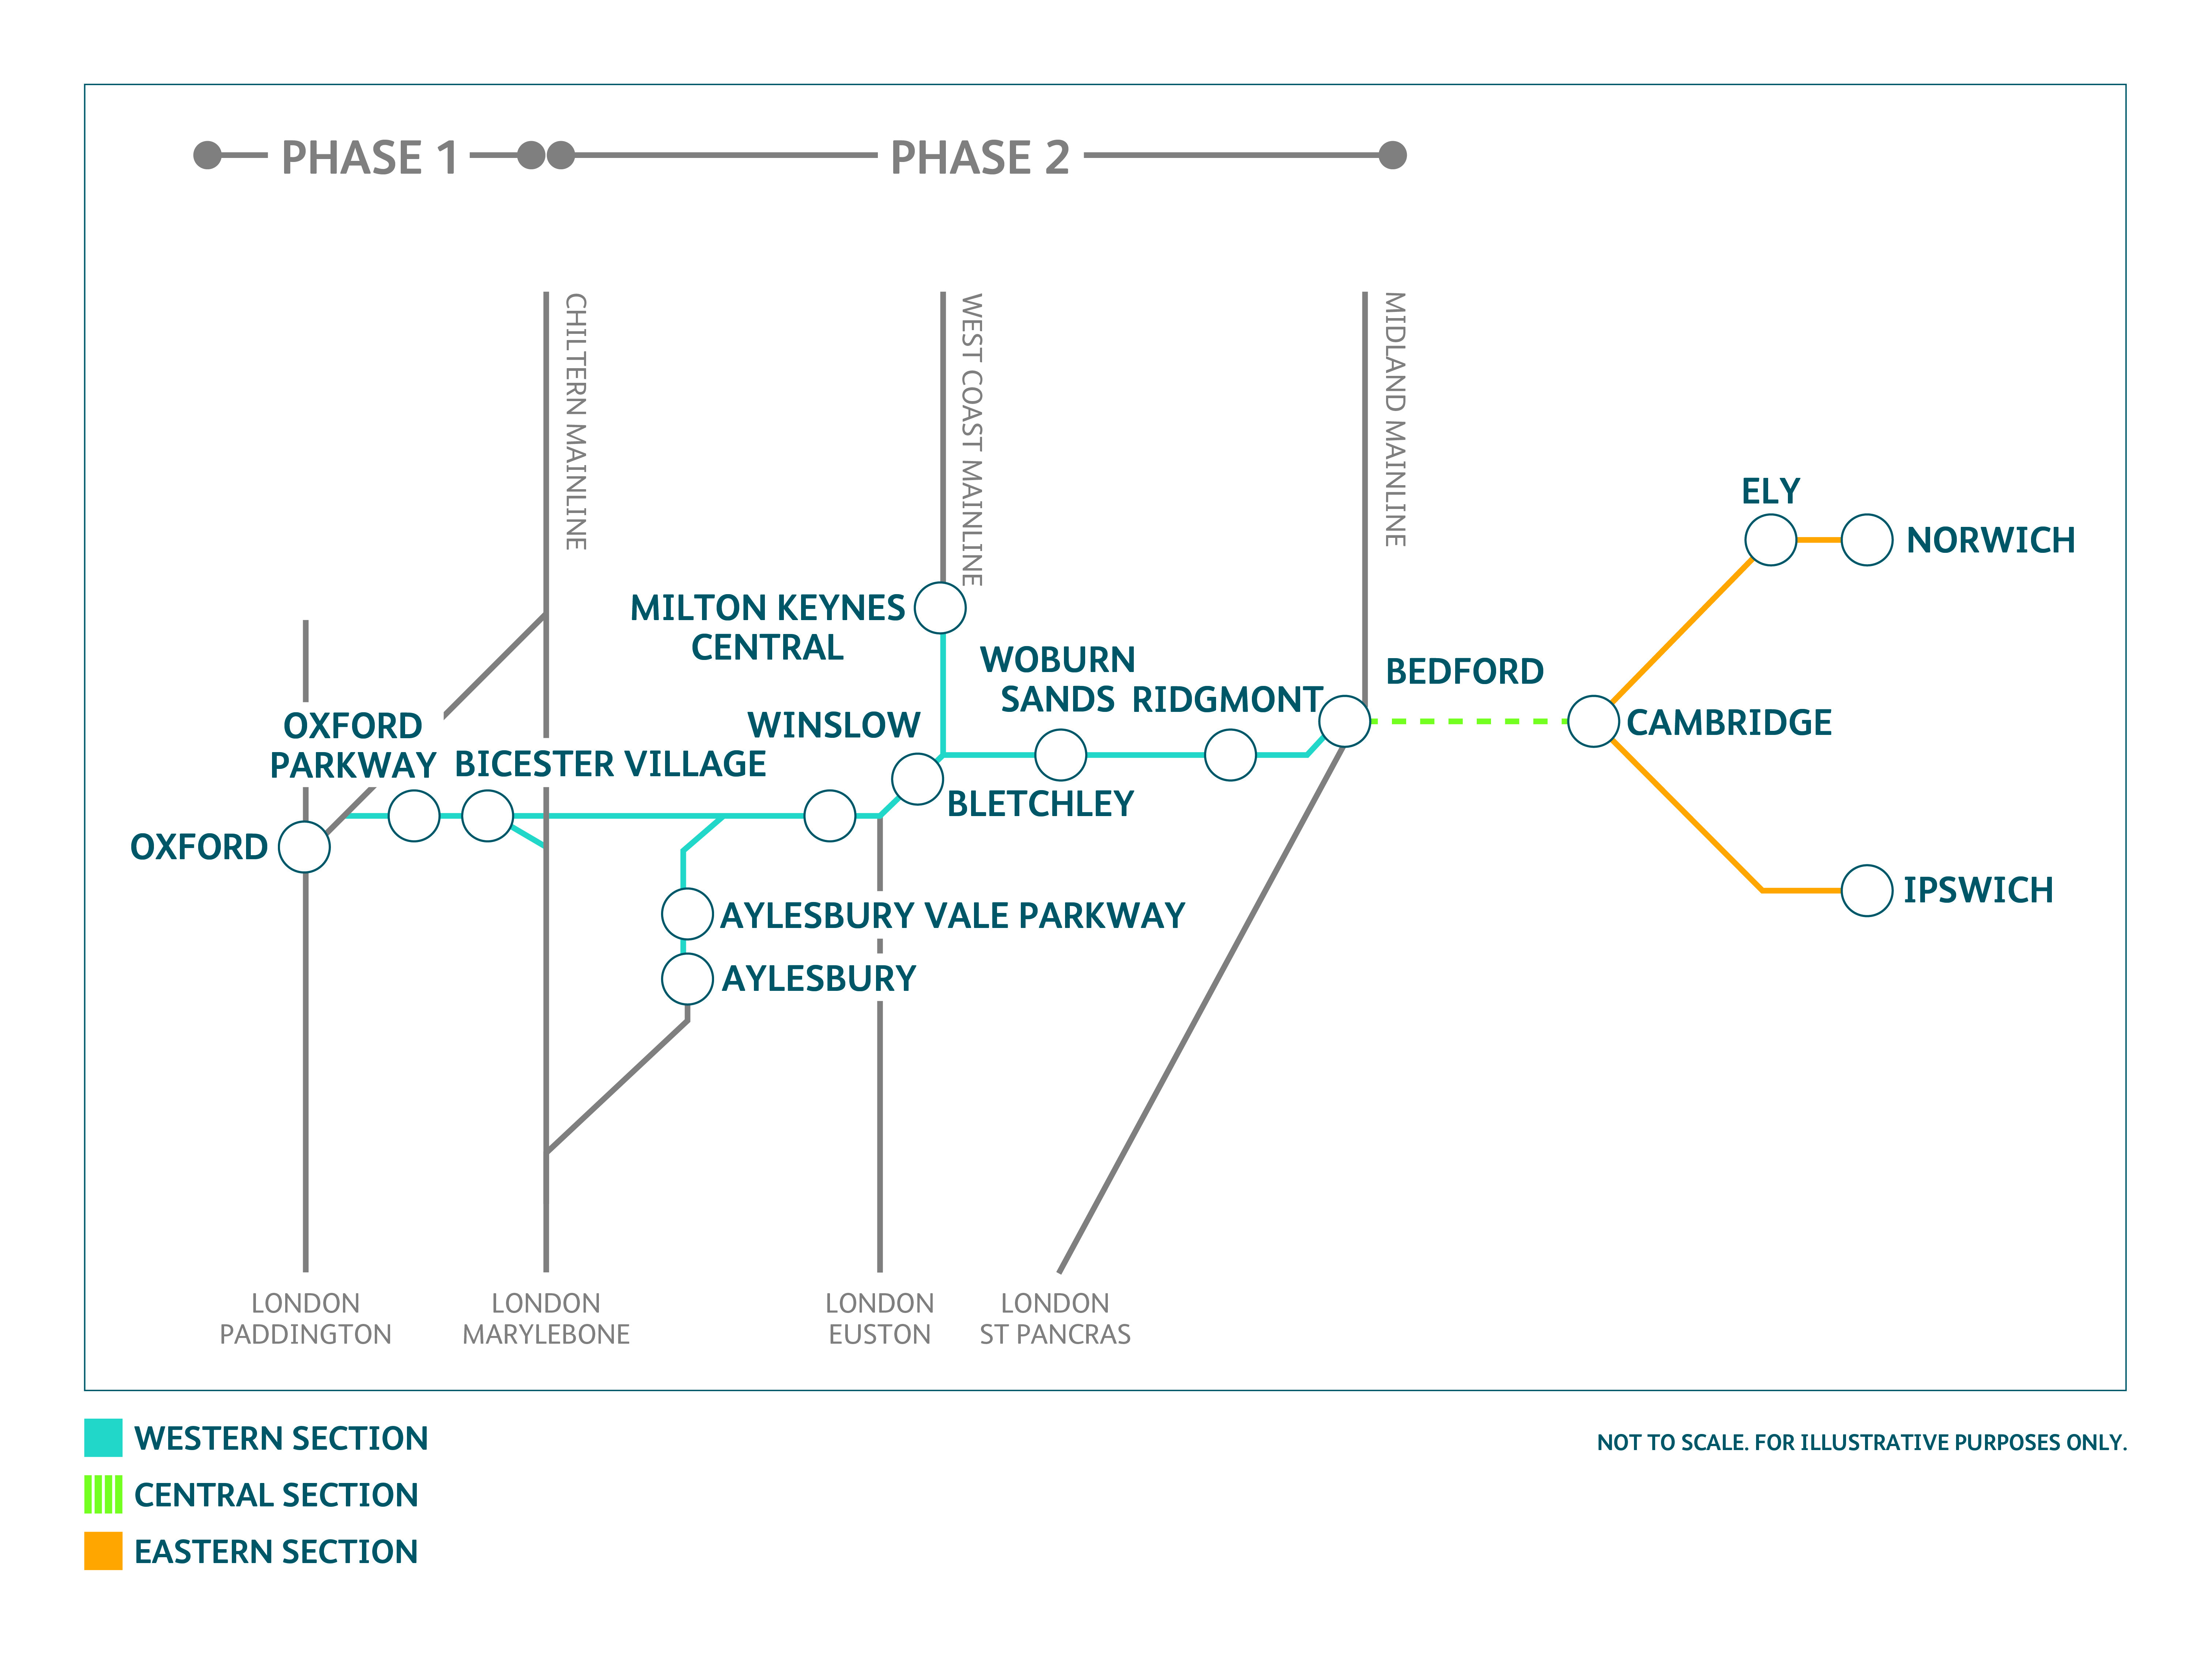 f81673fd33104d70b818f335fa6eaa7e?width=1035&height=960 network rail submits final proposals for east west rail phase 2